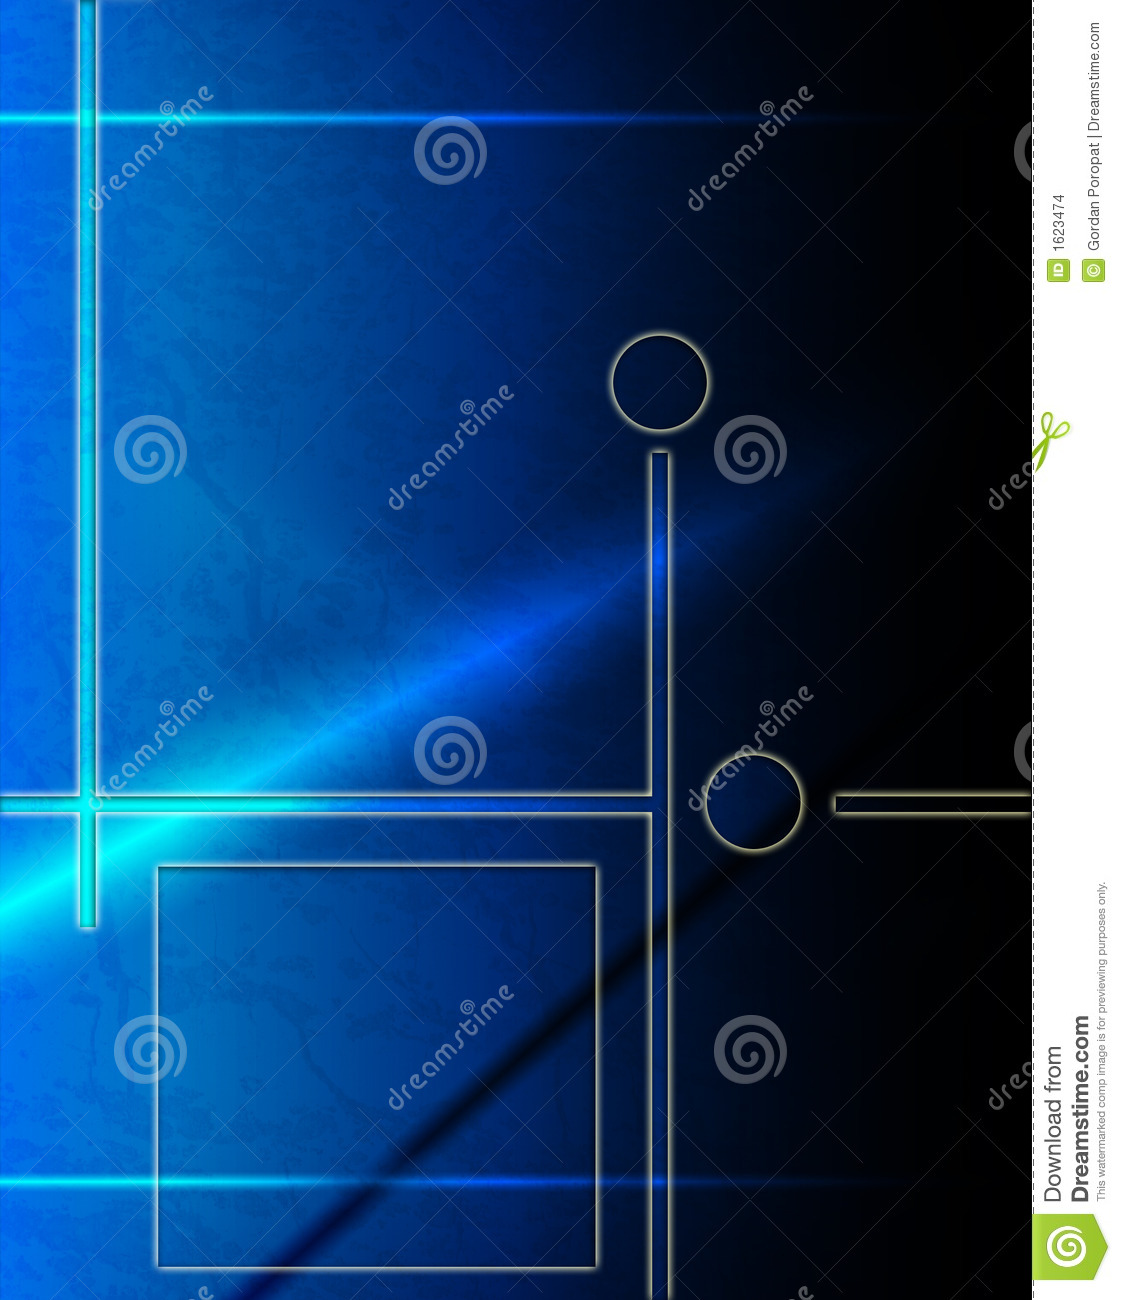 Abstract Background Stock Illustration. Illustration Of